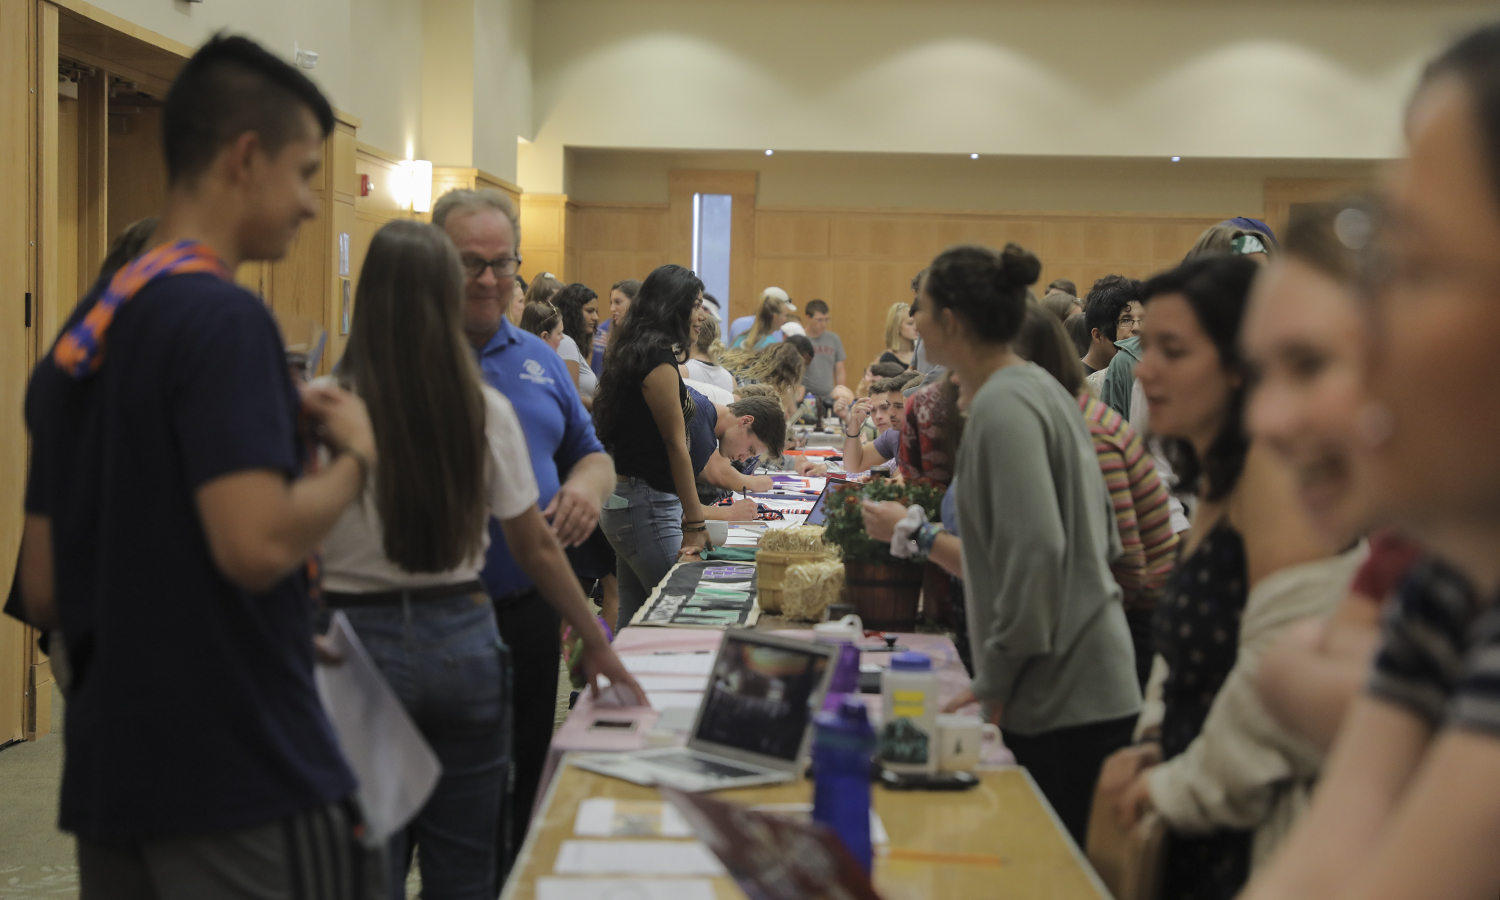 Students explore more than 100 clubs and activities during the Spring Involvement Expo in the Vandervort Room.